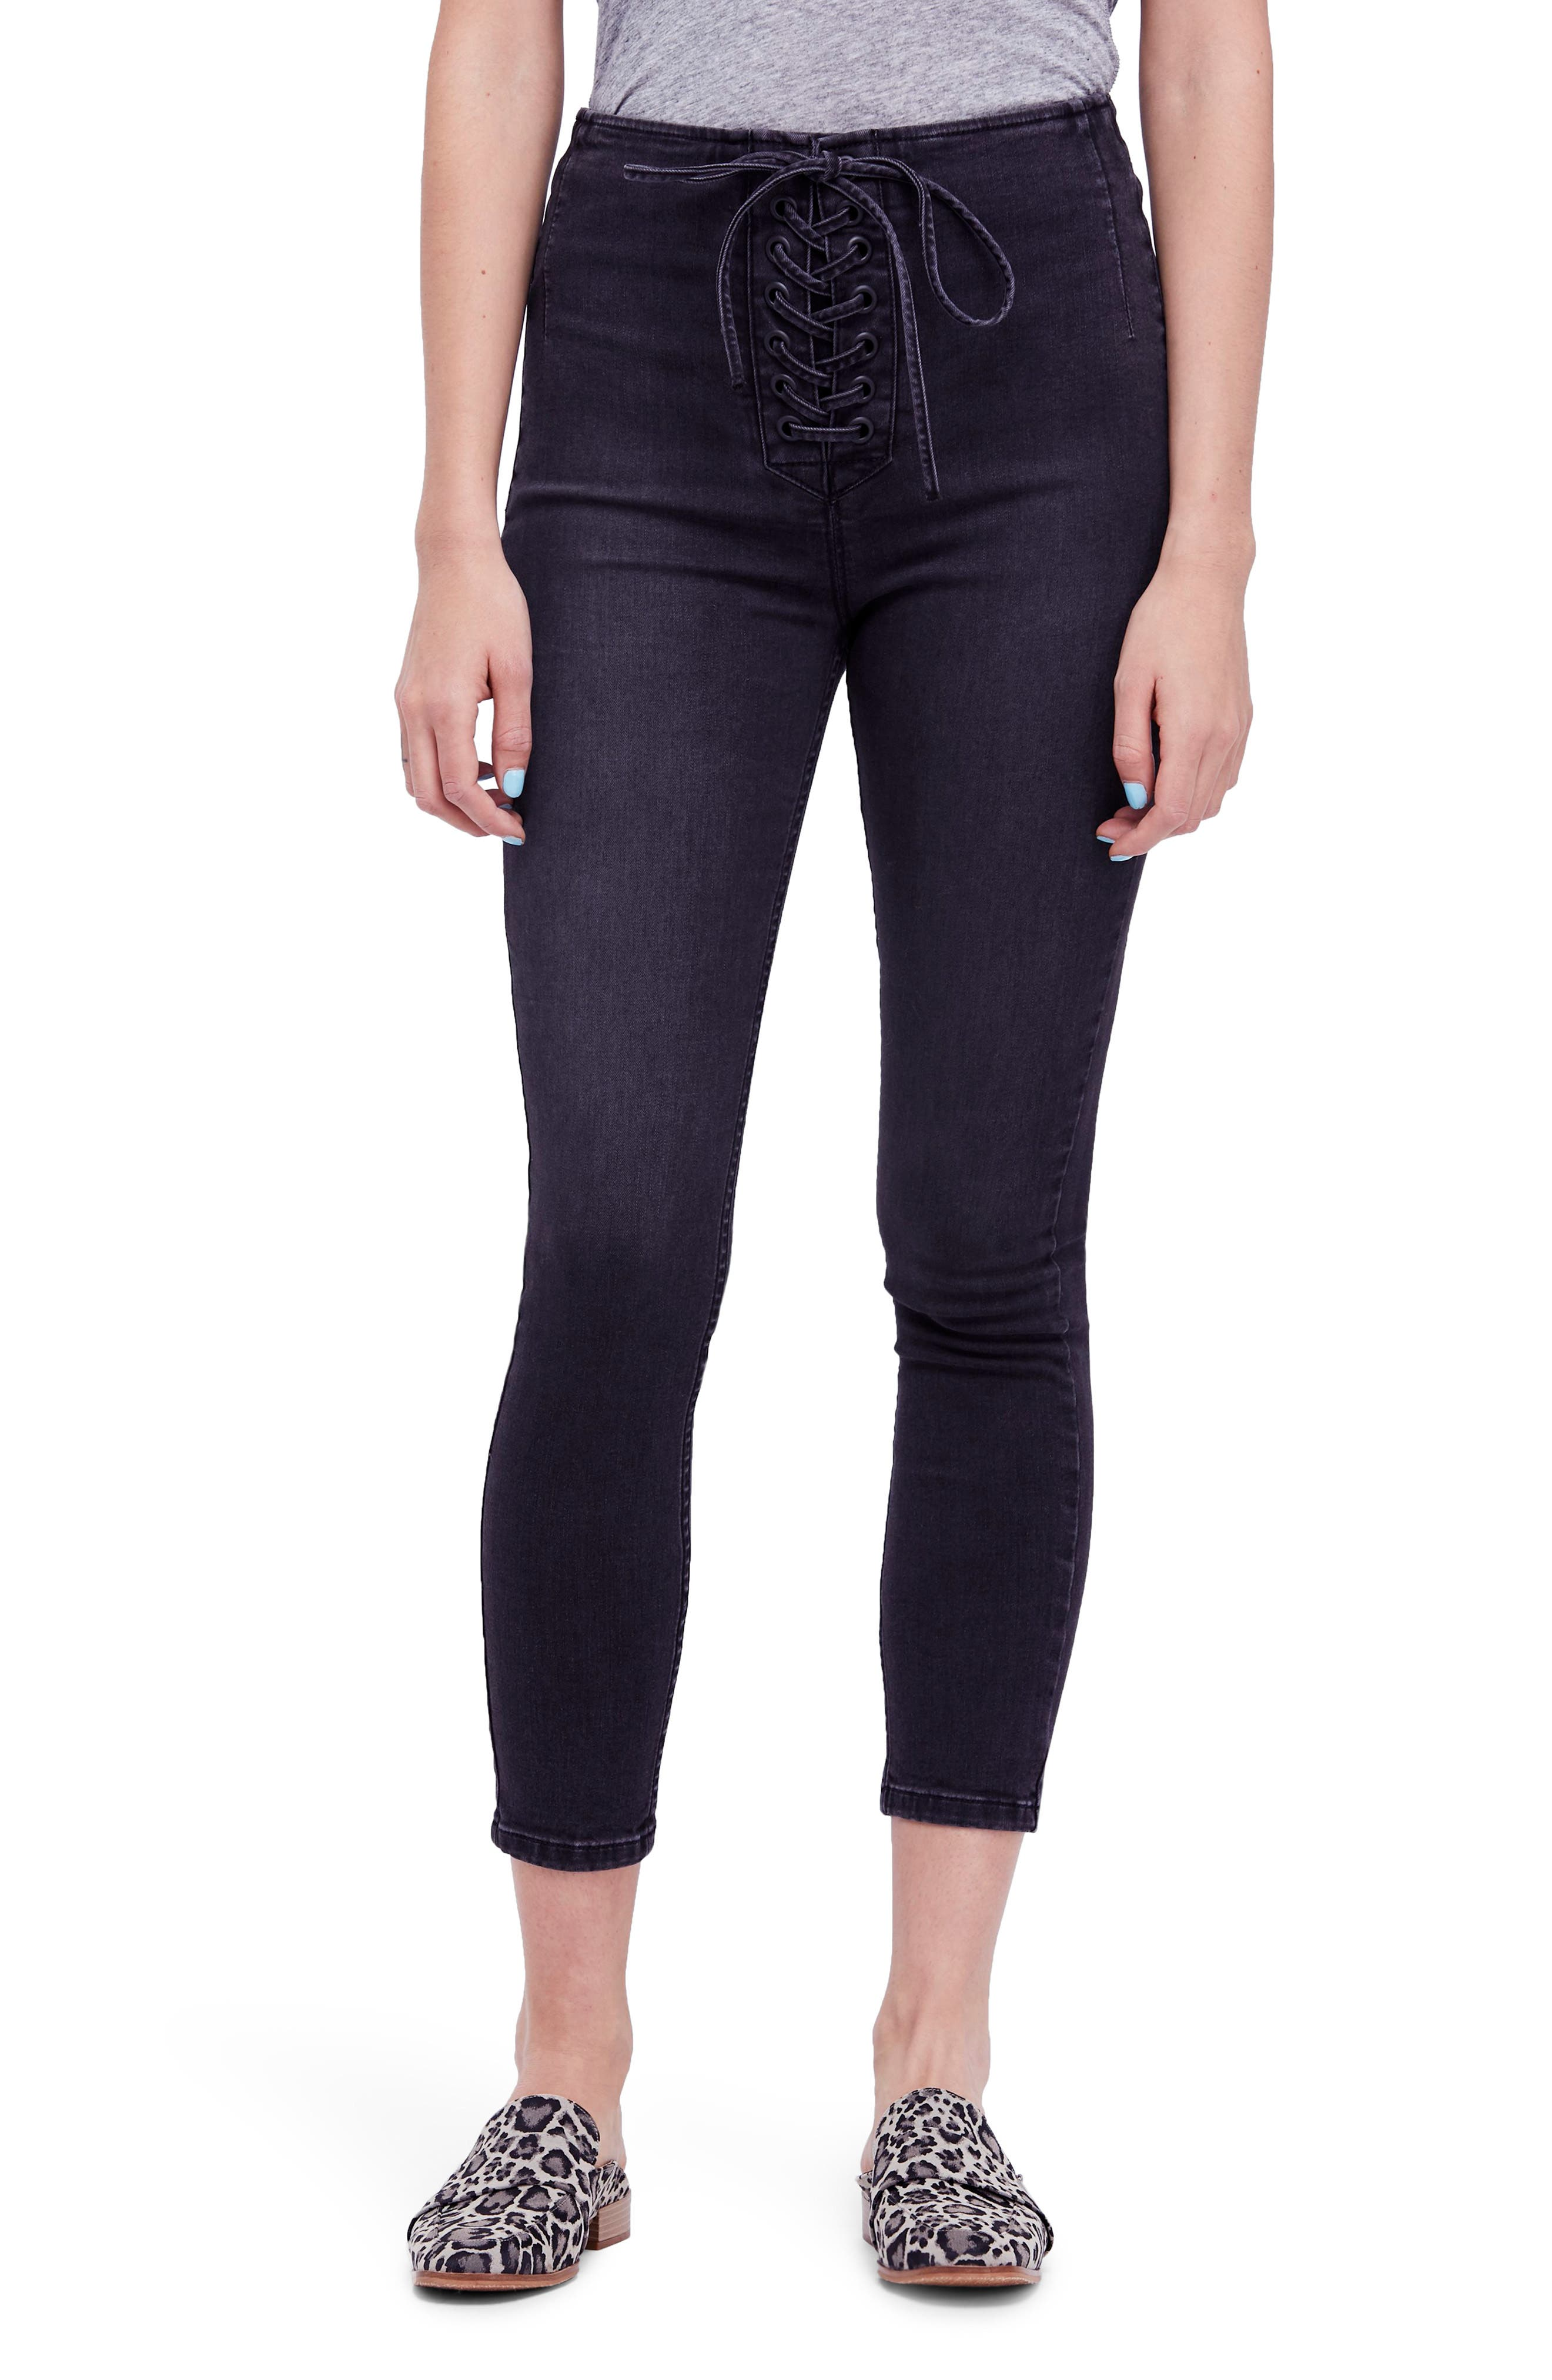 Lace-Up High Waist Denim Leggings,                         Main,                         color, Black